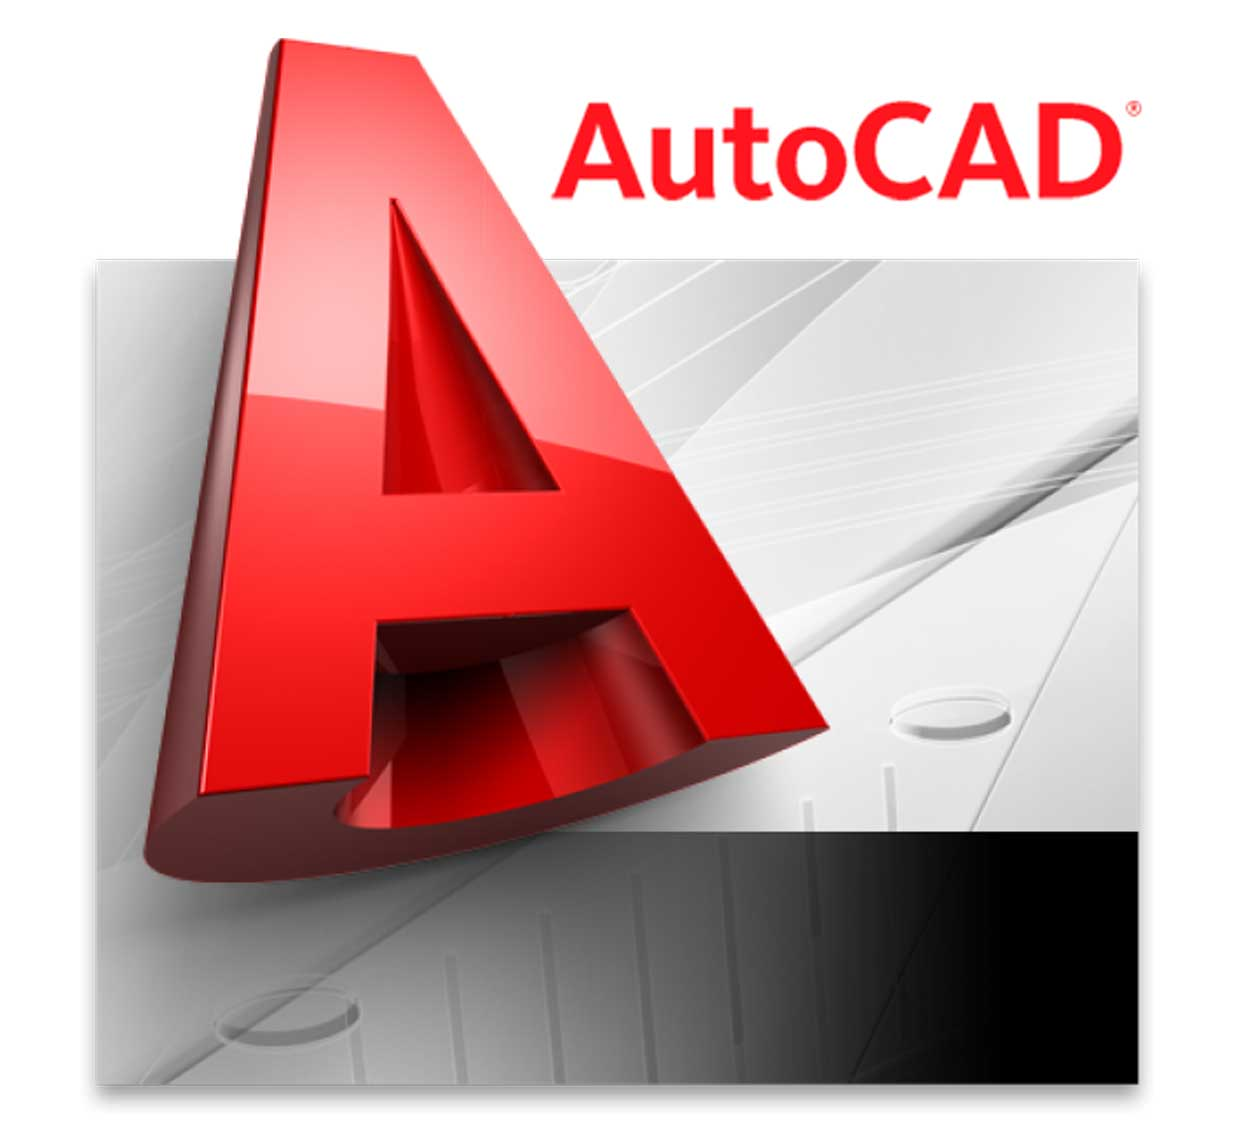 Autocad Logo Yukonstruct Community Workshop Makerspace In The